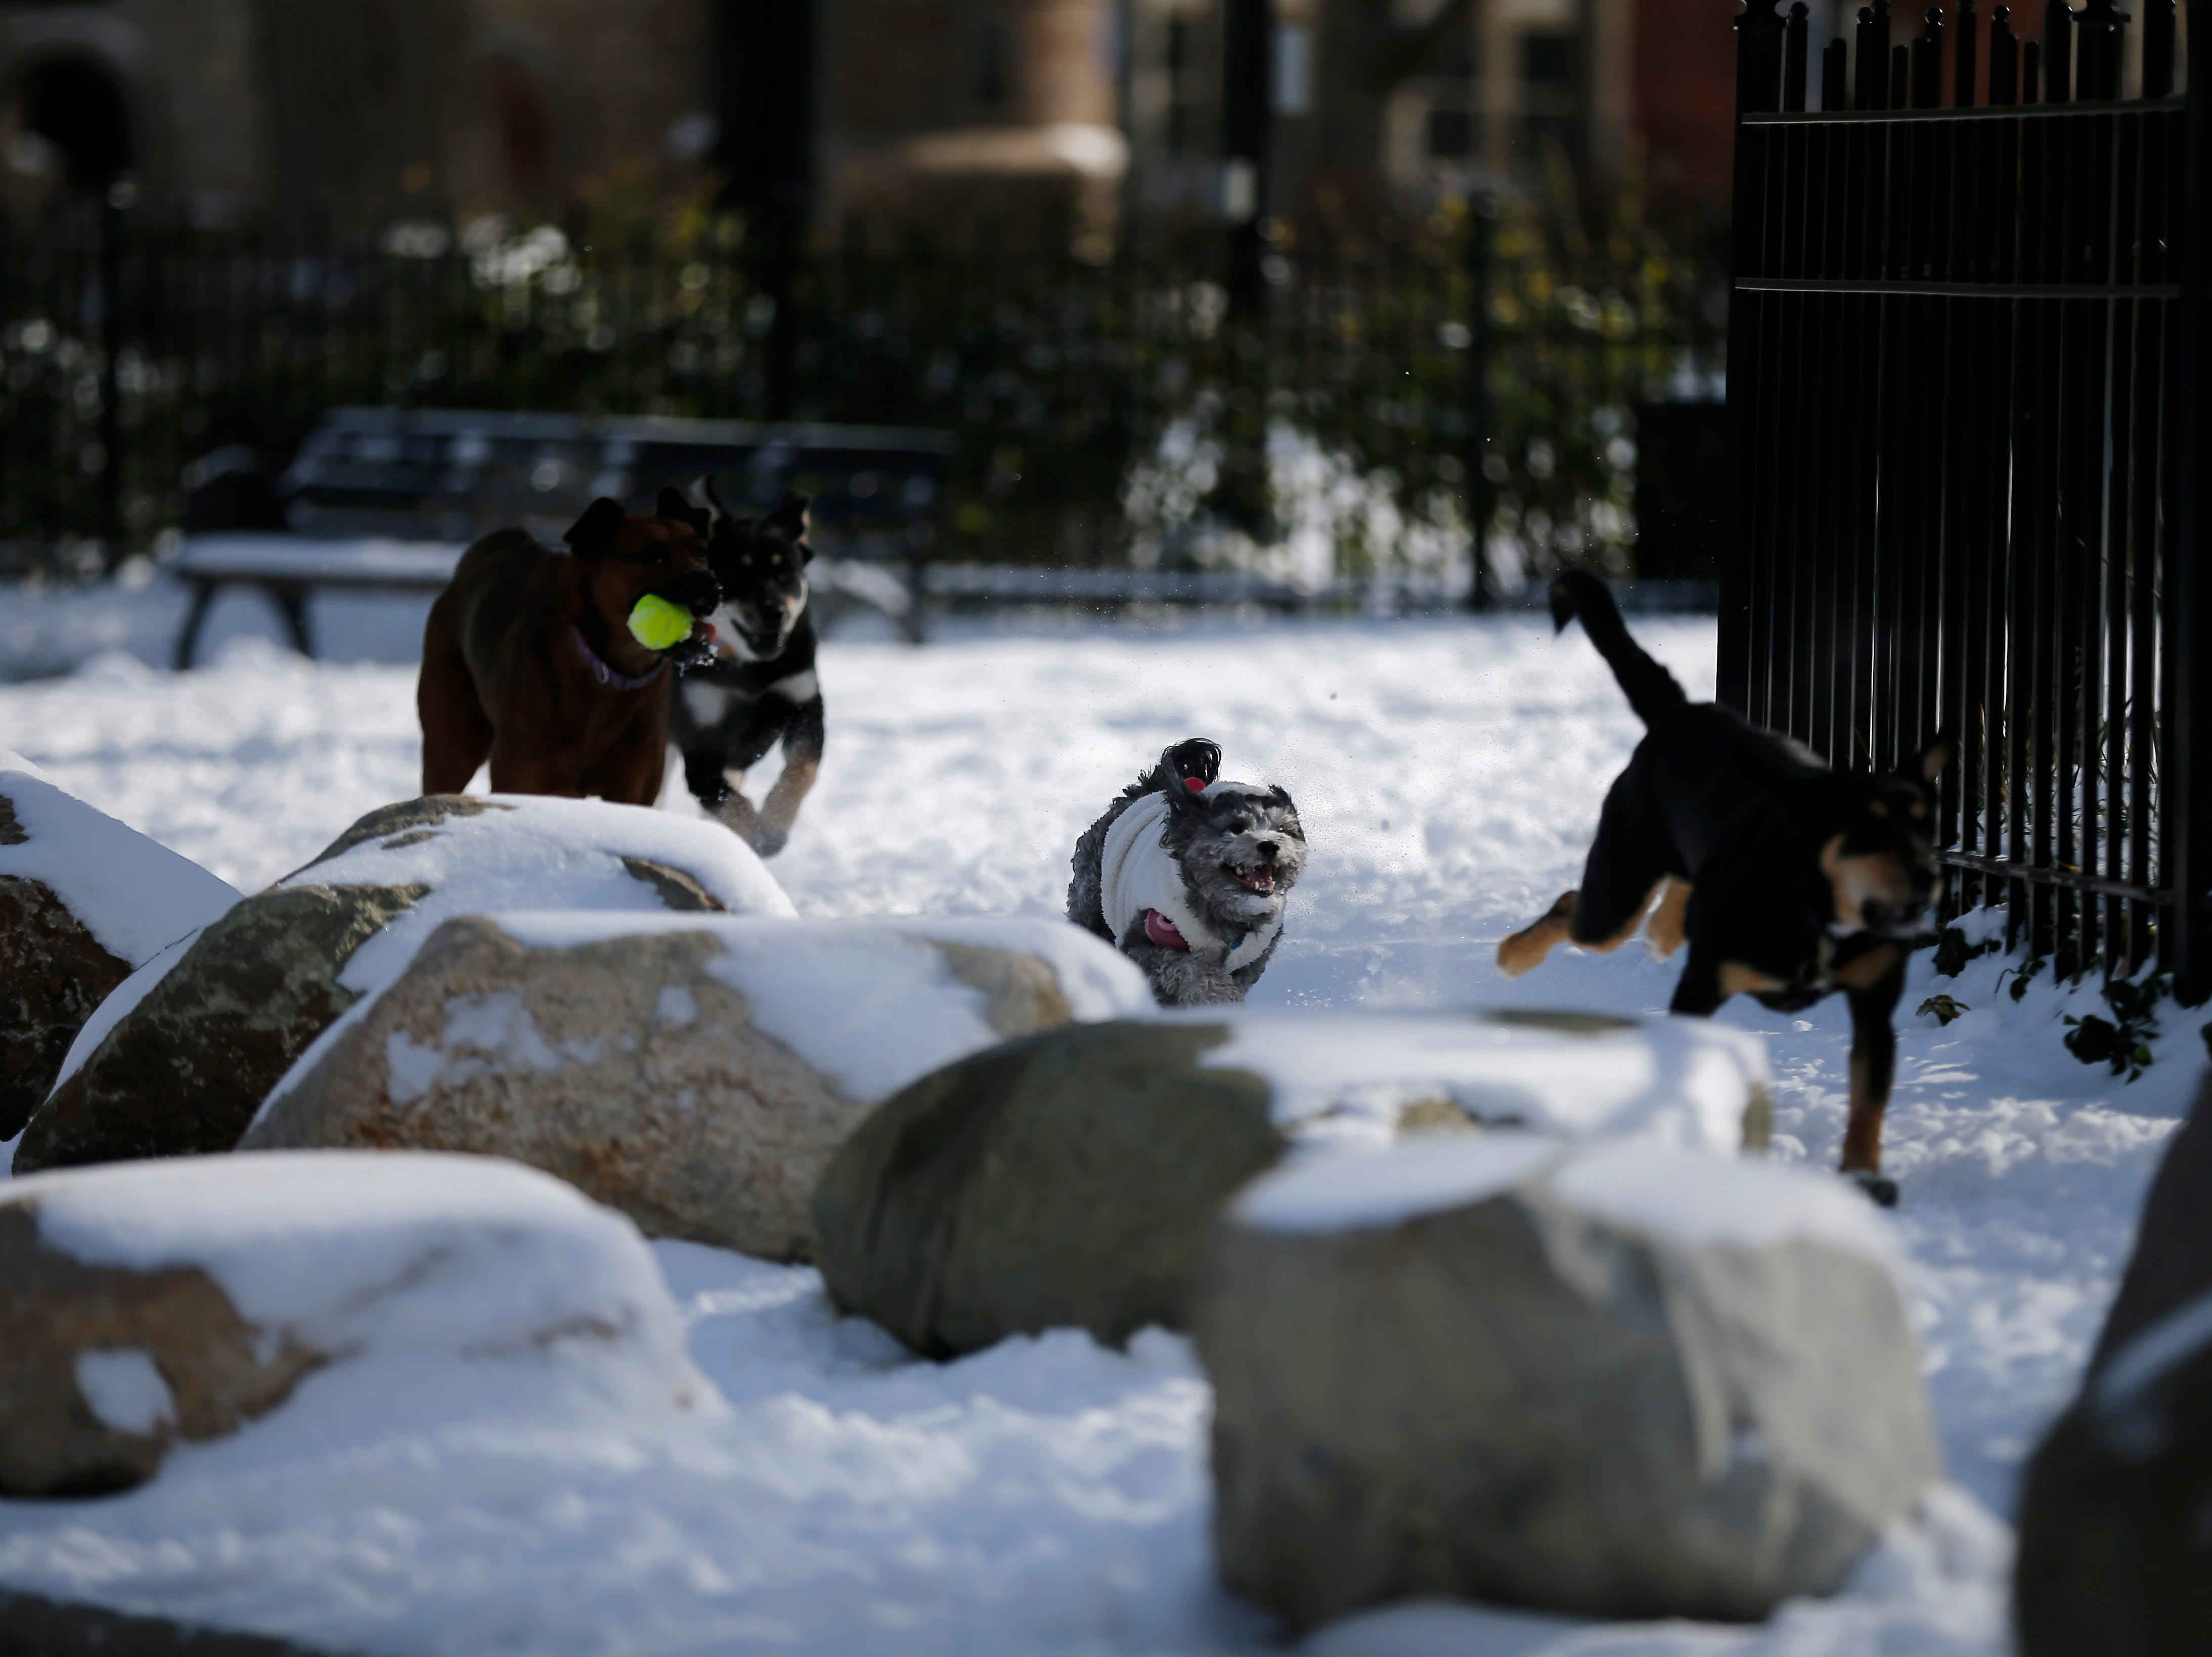 Dogs frolic in the dog park at Washington Park in the Over-the-Rhine neighborhood of Cincinnati on Sunday, Jan. 20, 2019. Temperatures remain below 15 degrees with windchills as low as 4 in the region Sunday.